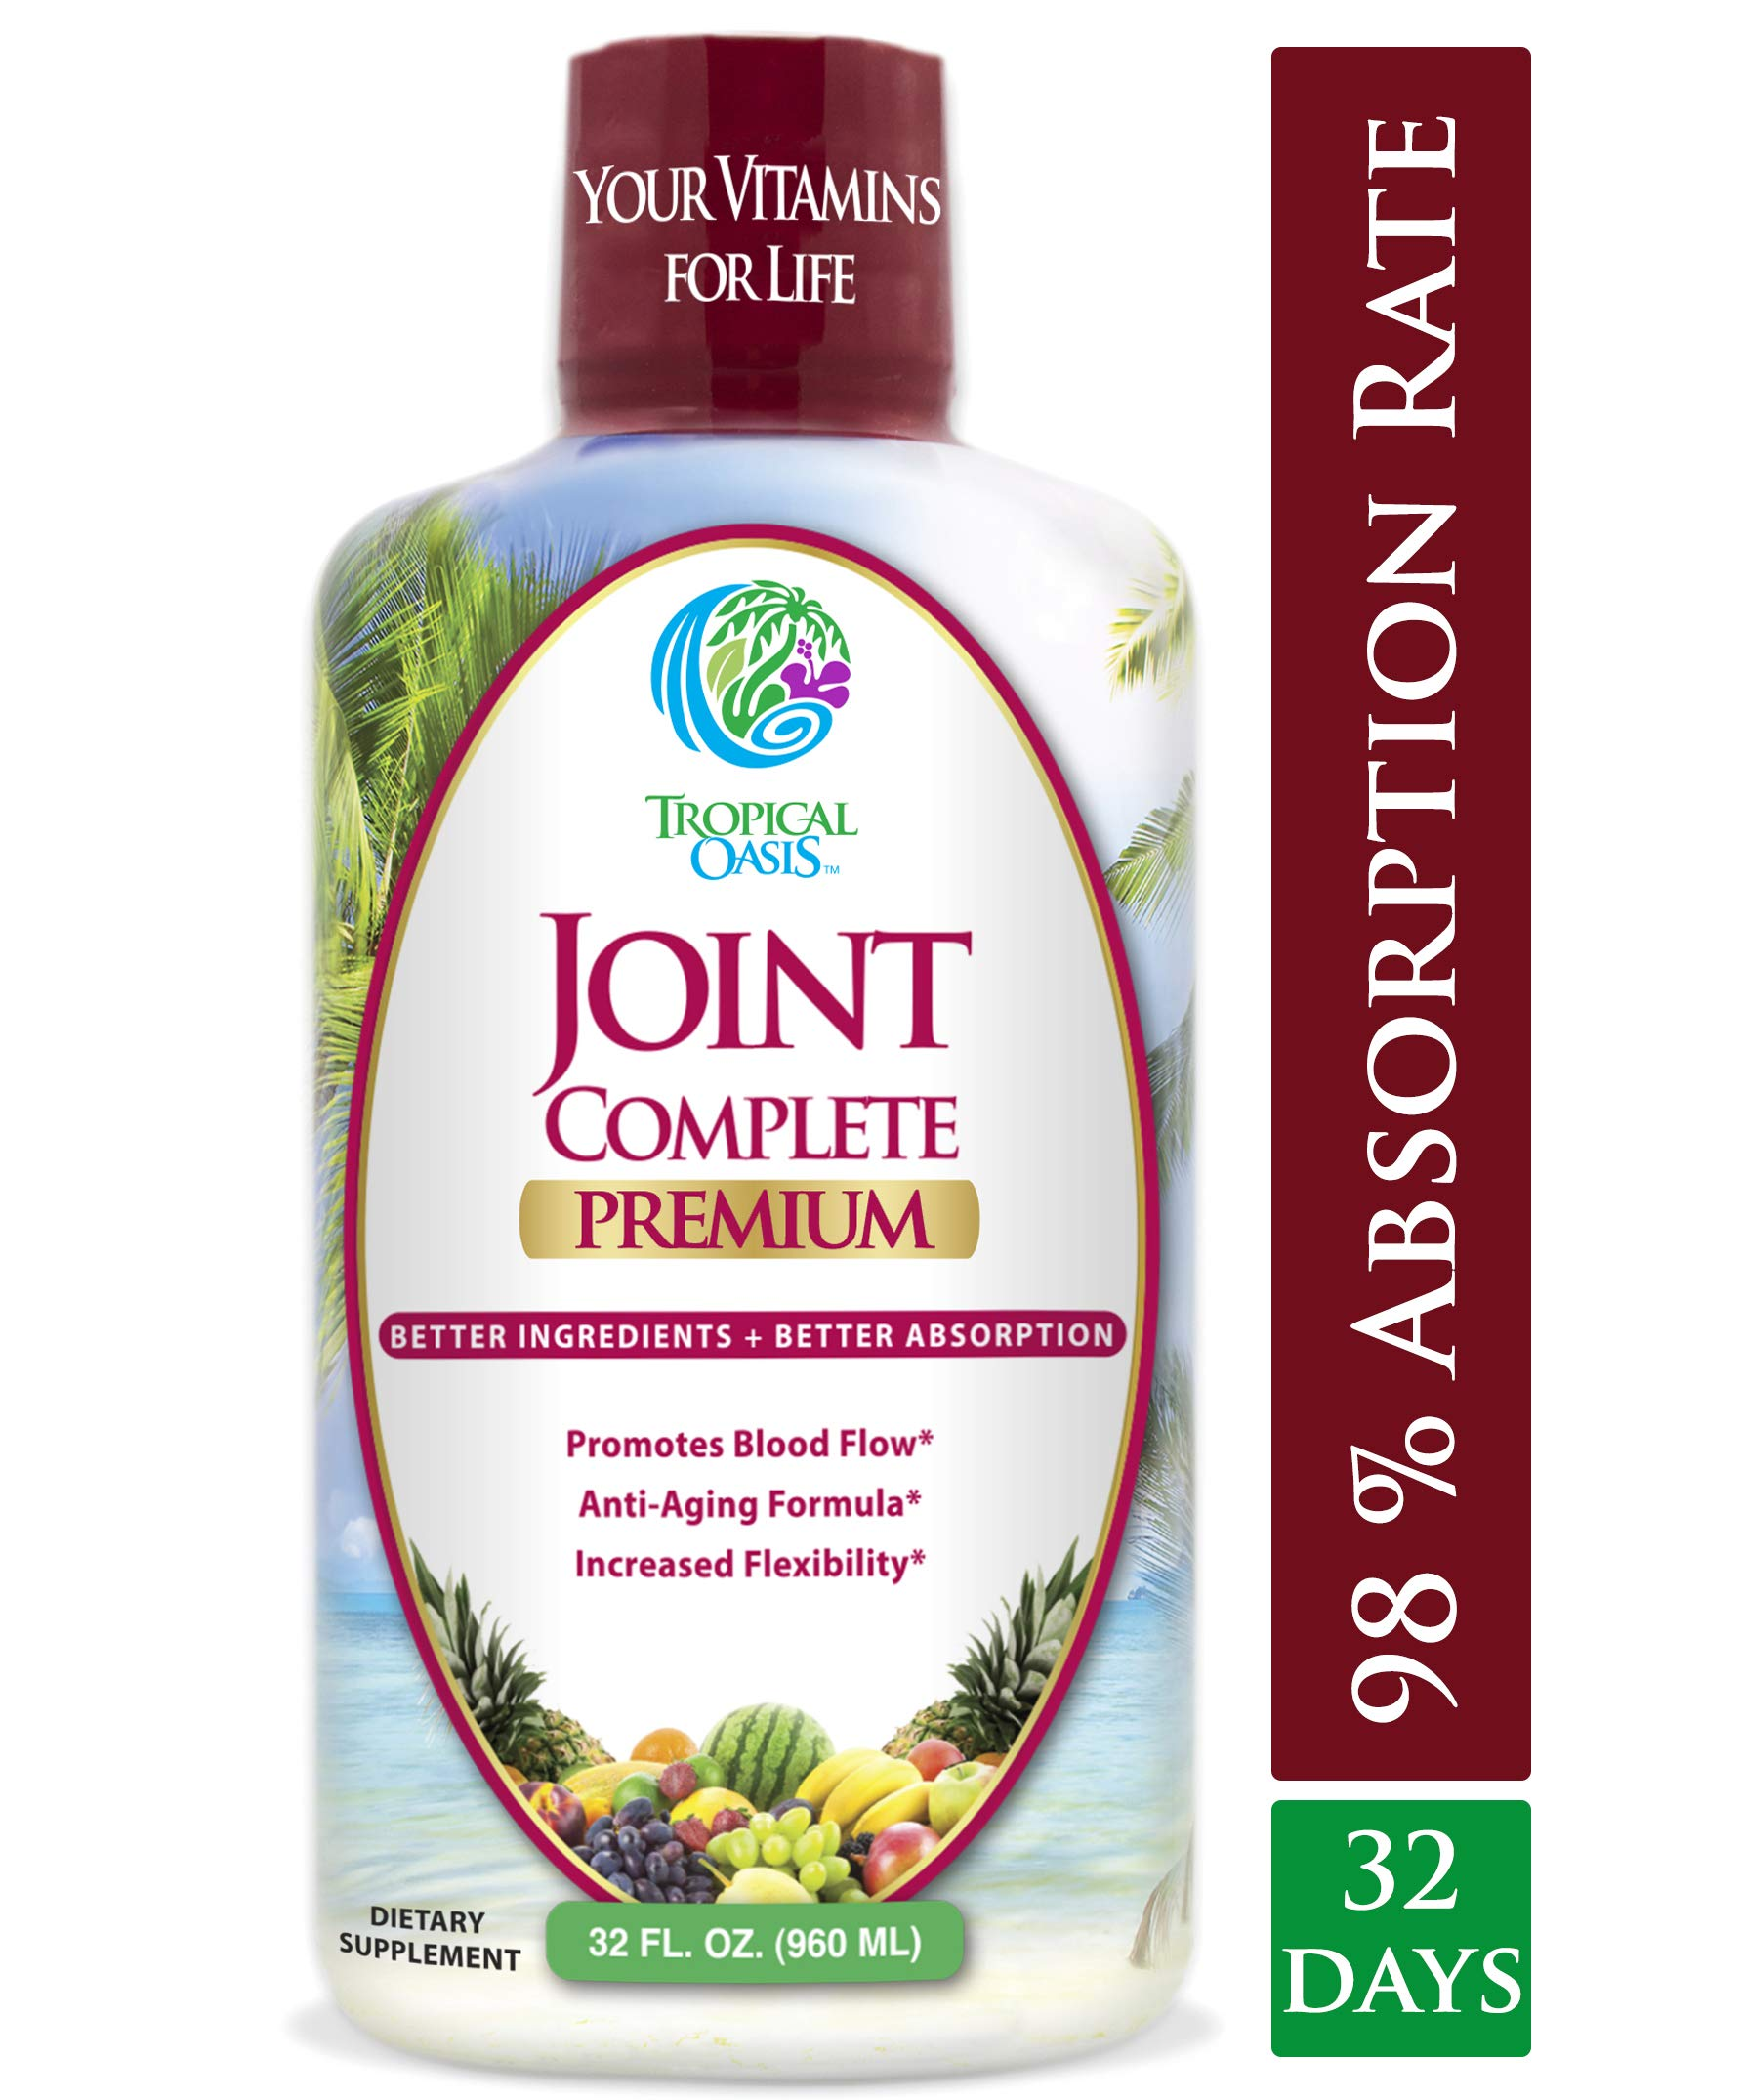 Joint Complete Premium- Liquid Joint Supplement w/Glucosamine, Chondroitin, MSM, Hyaluronic Acid - for Bone, Joint Health, Joint Pain Relief - 96% Max Absorption- 32oz, 32 serv